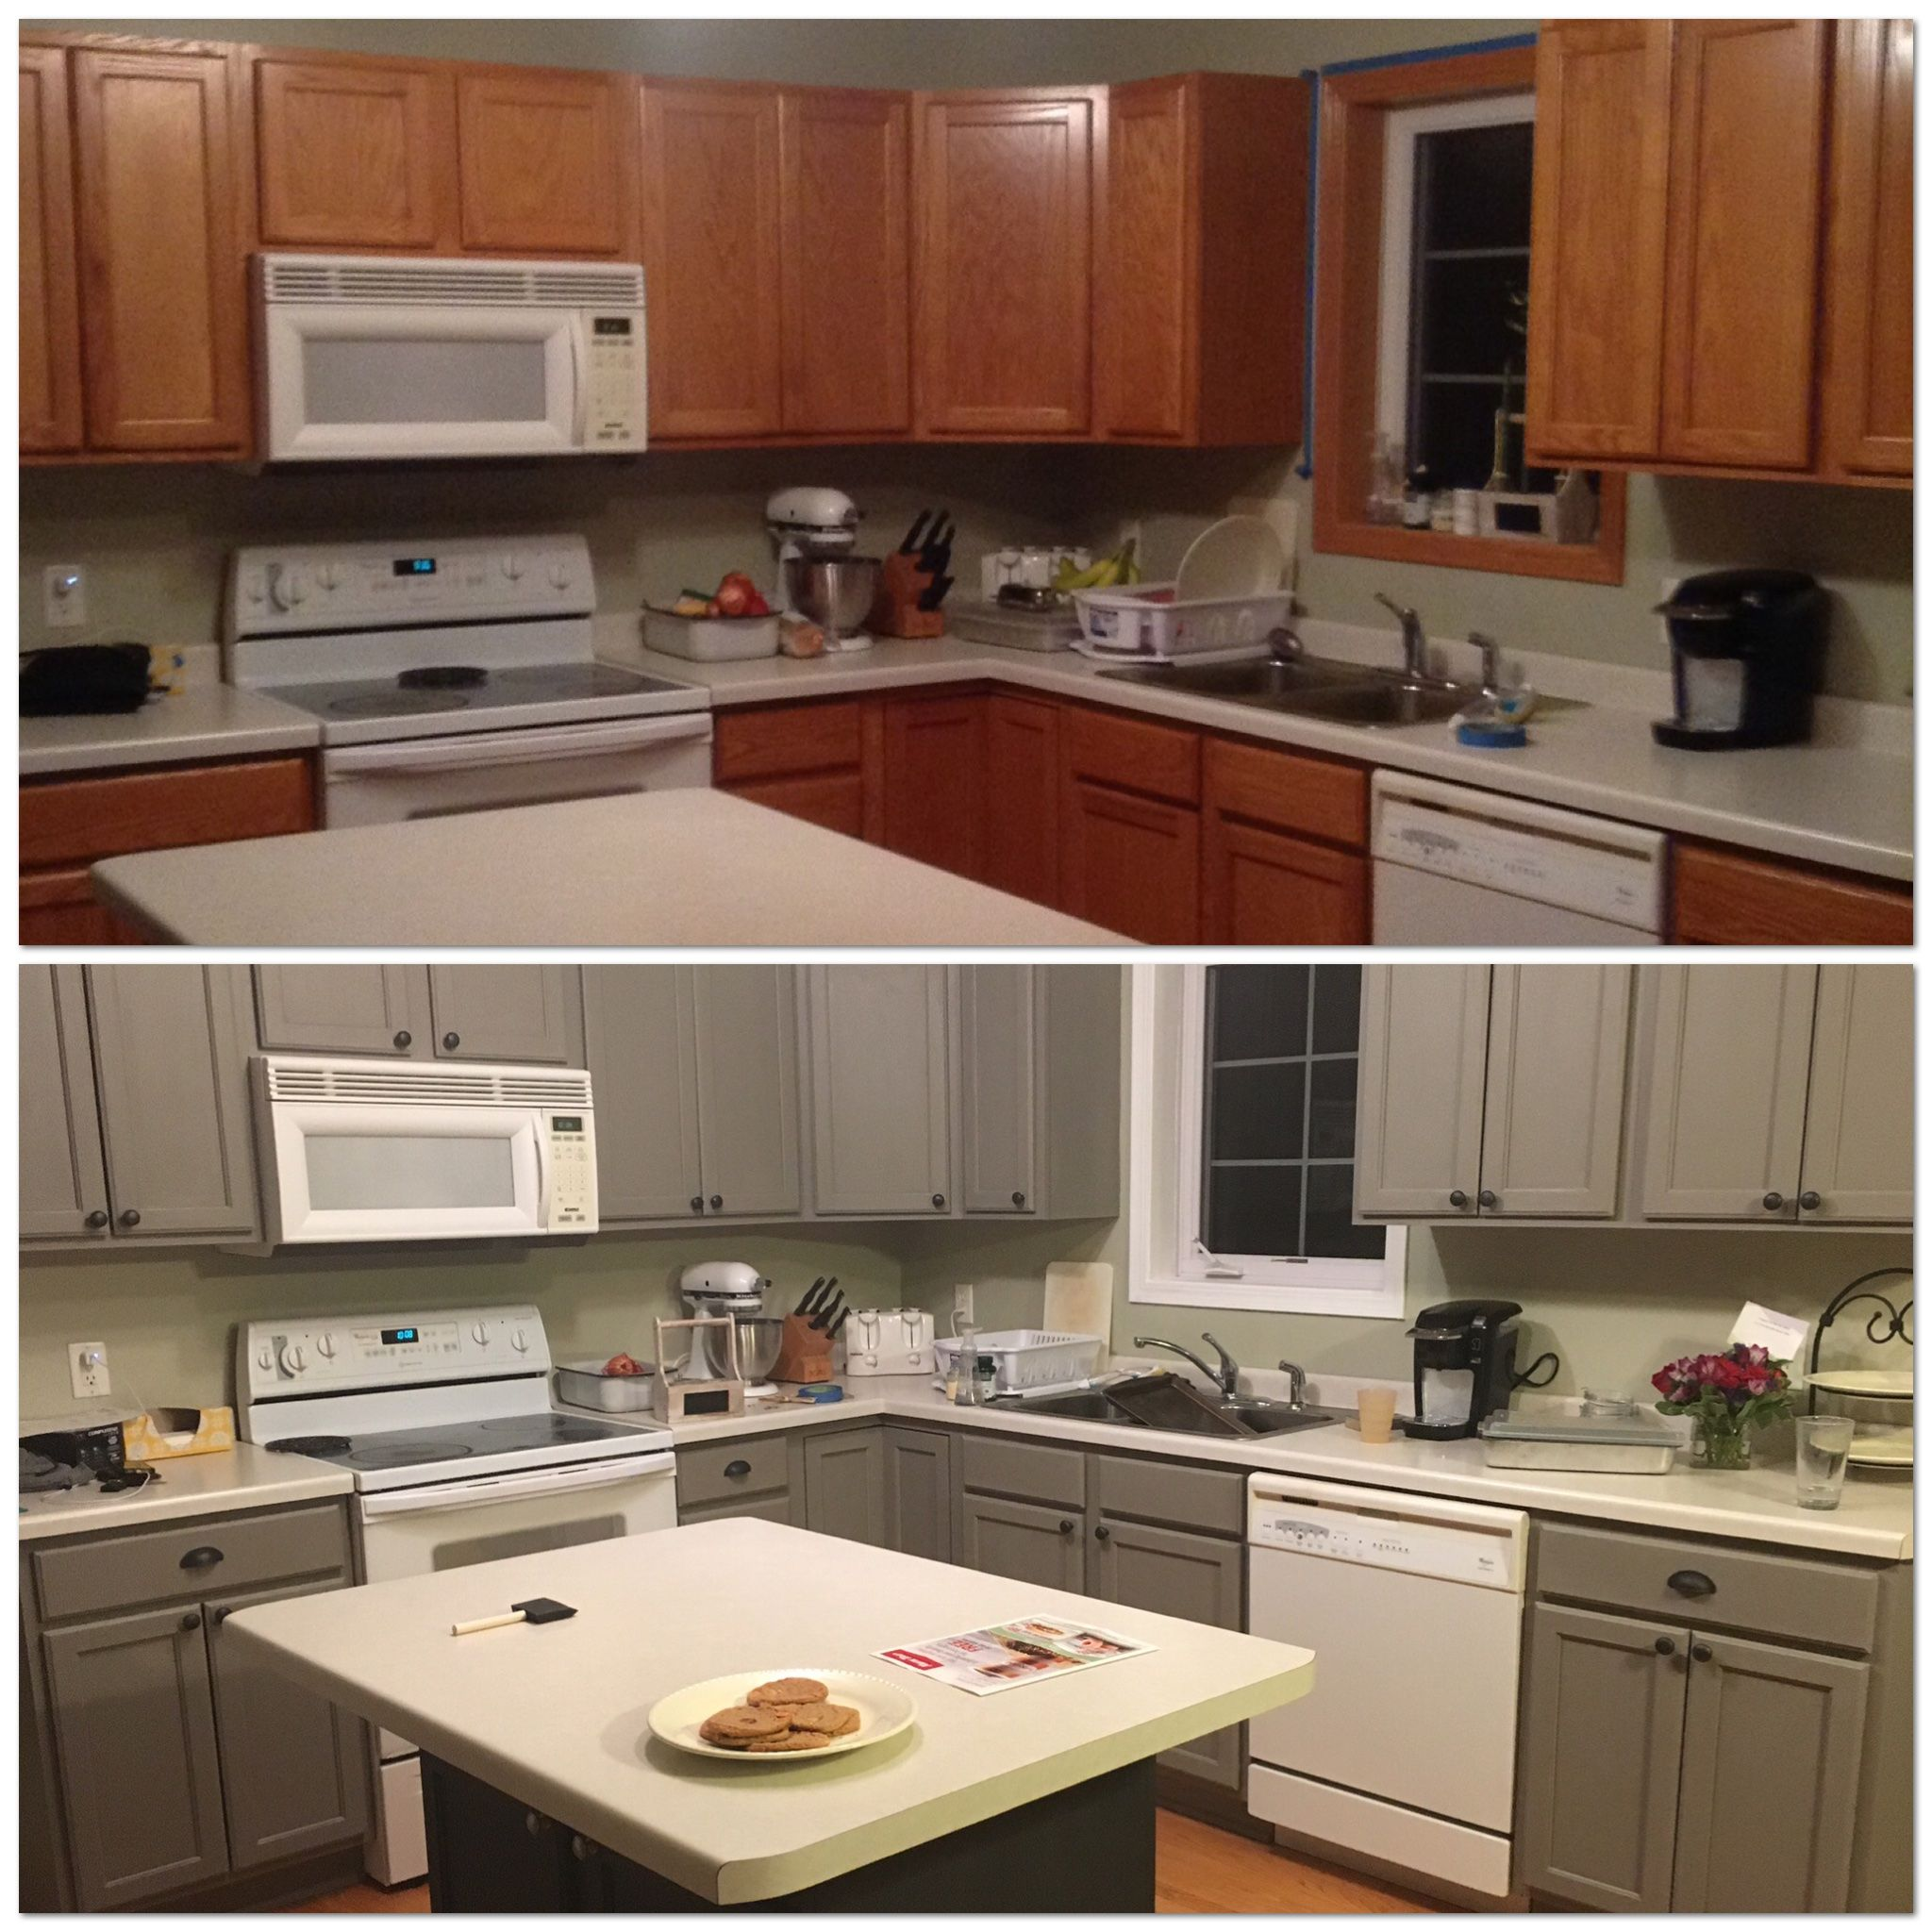 Chalk Paint Kitchen Cabinets Green: Before And After Painting My Kitchen Cupboards With Annie